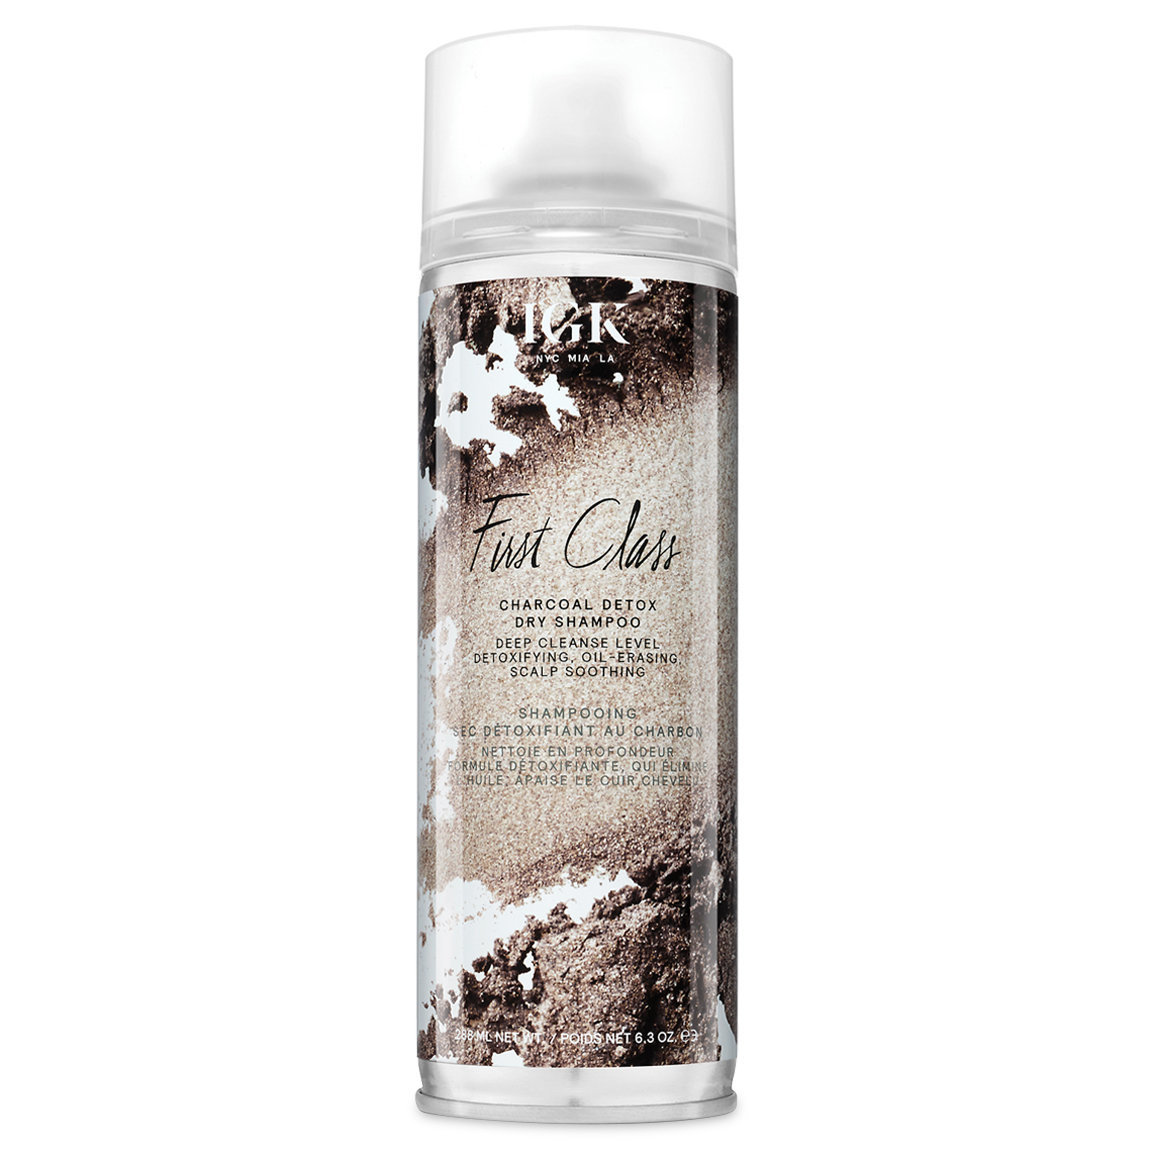 IGK First Class Charcoal Detox Dry Shampoo 6.3 oz alternative view 1 - product swatch.